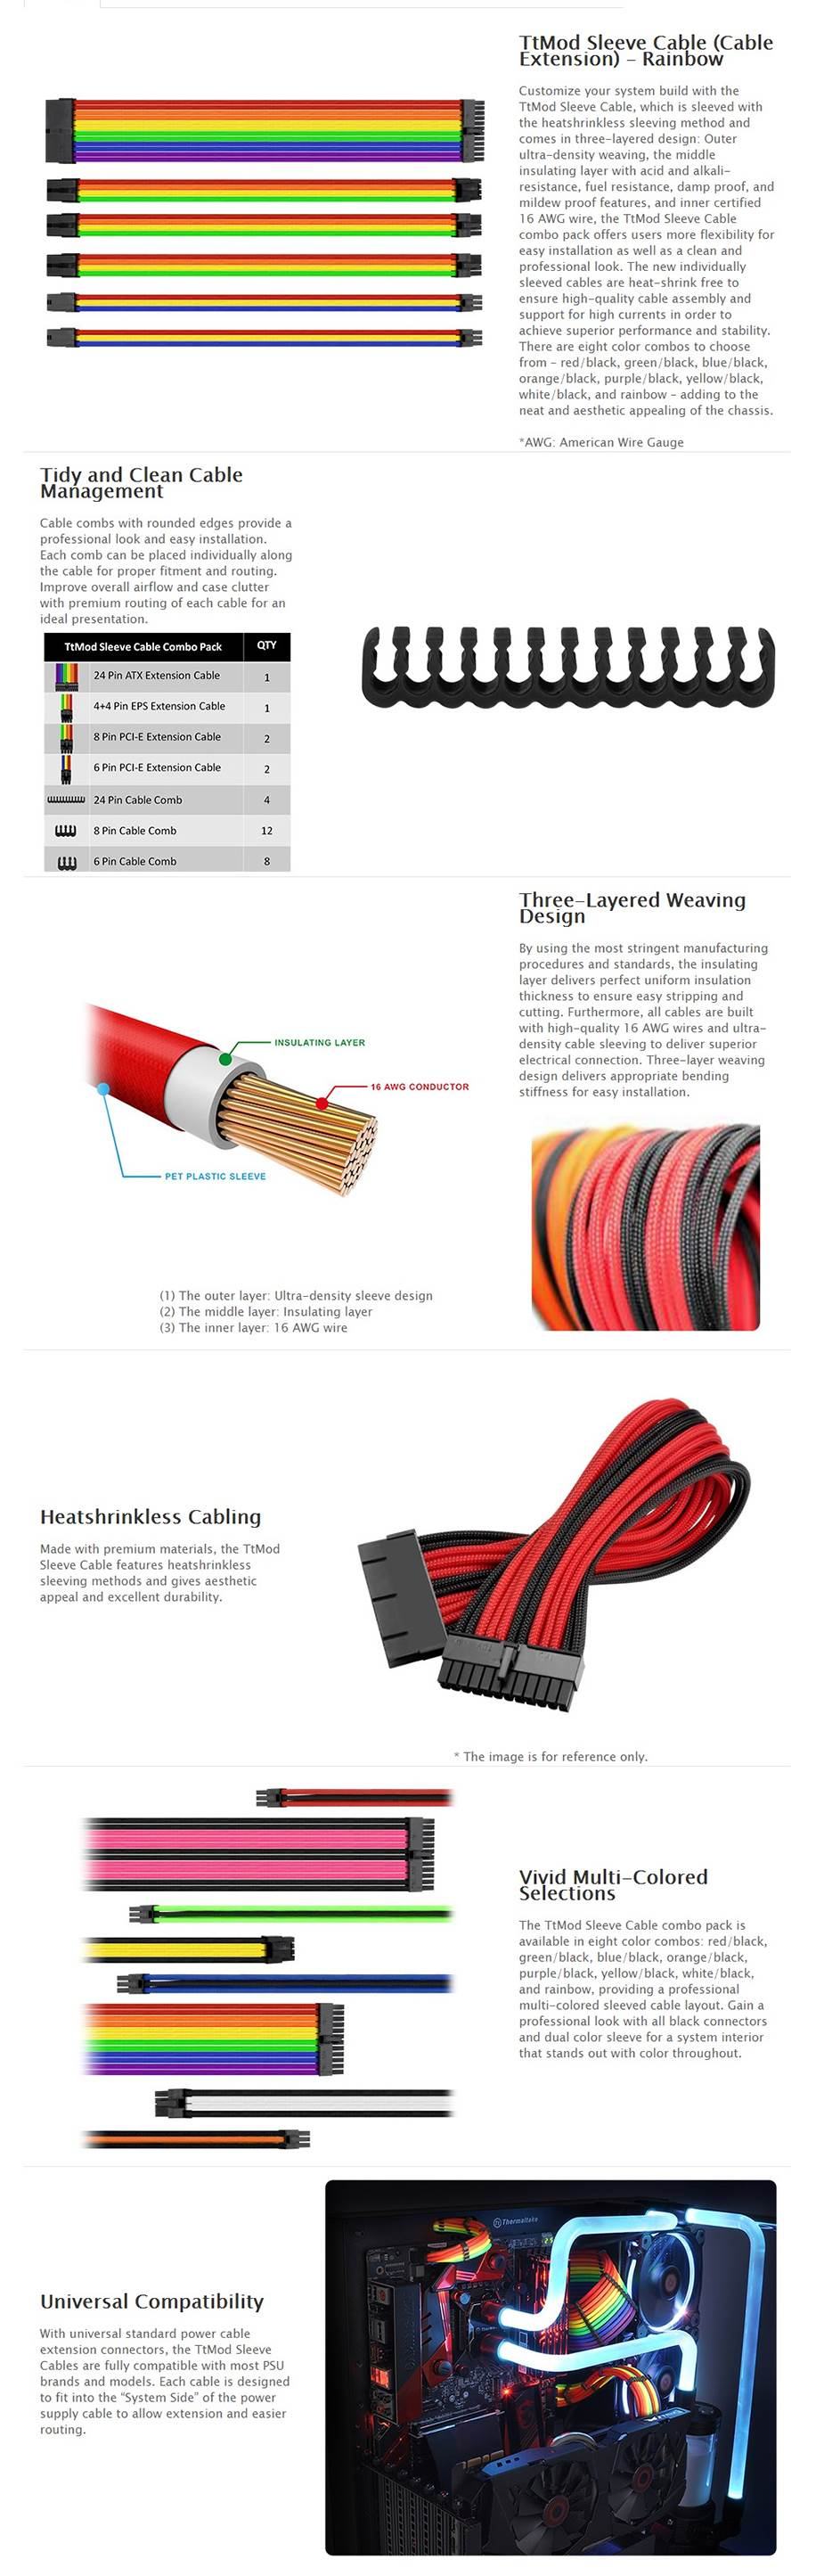 Thermaltake Ttmod Sleeve Cable Extension Rainbow Ac 049 Wiring Specifications